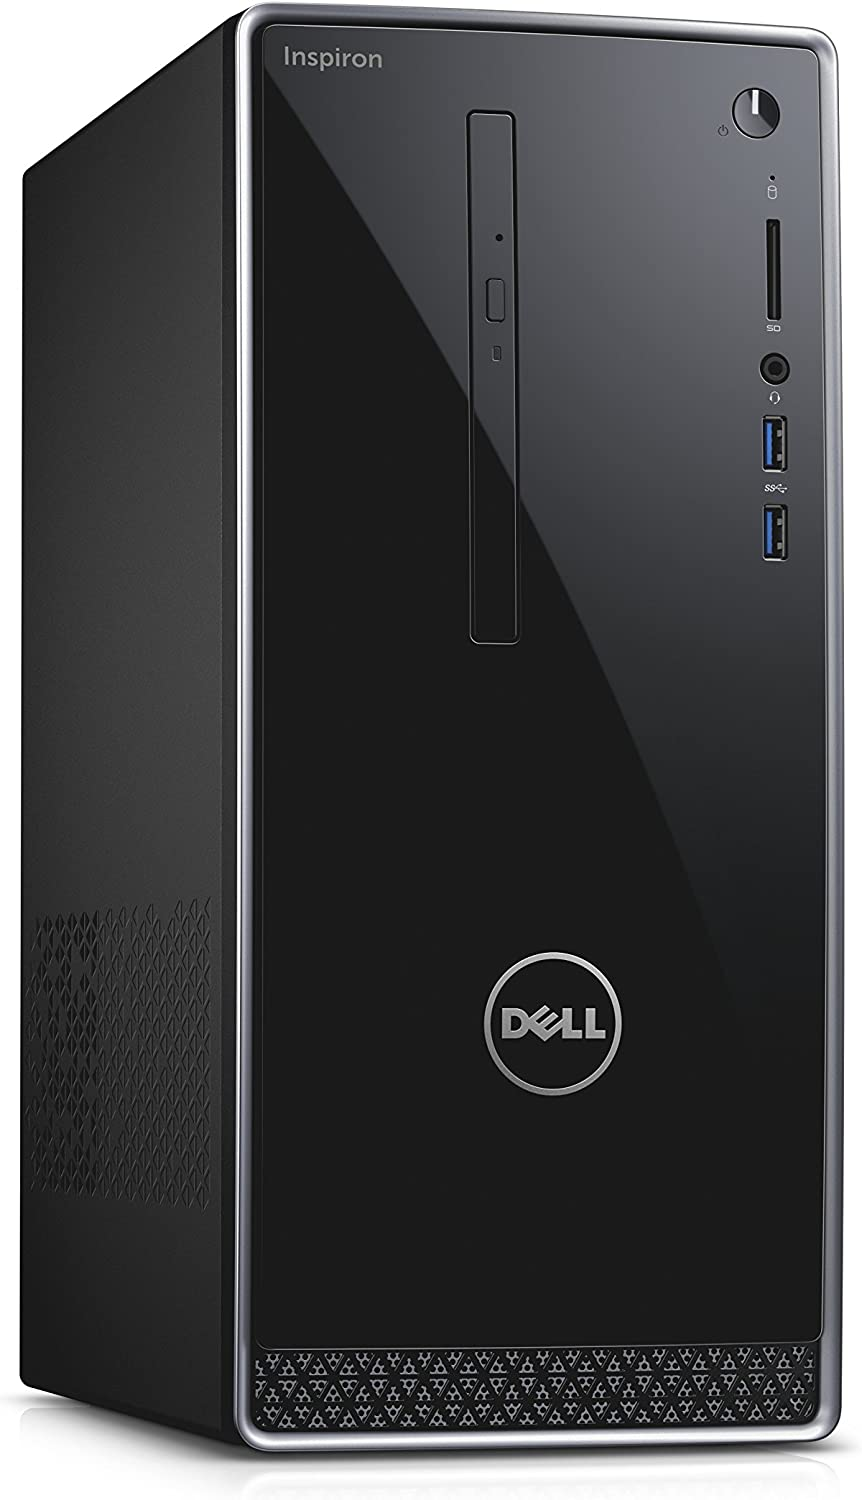 Dell Inspiron i3650-2820SLV Tower Desktop Intel Core i5-6400 2.7GHz Processor 8GB DDR3L 1TB HDD Windows 7 Professional Silver